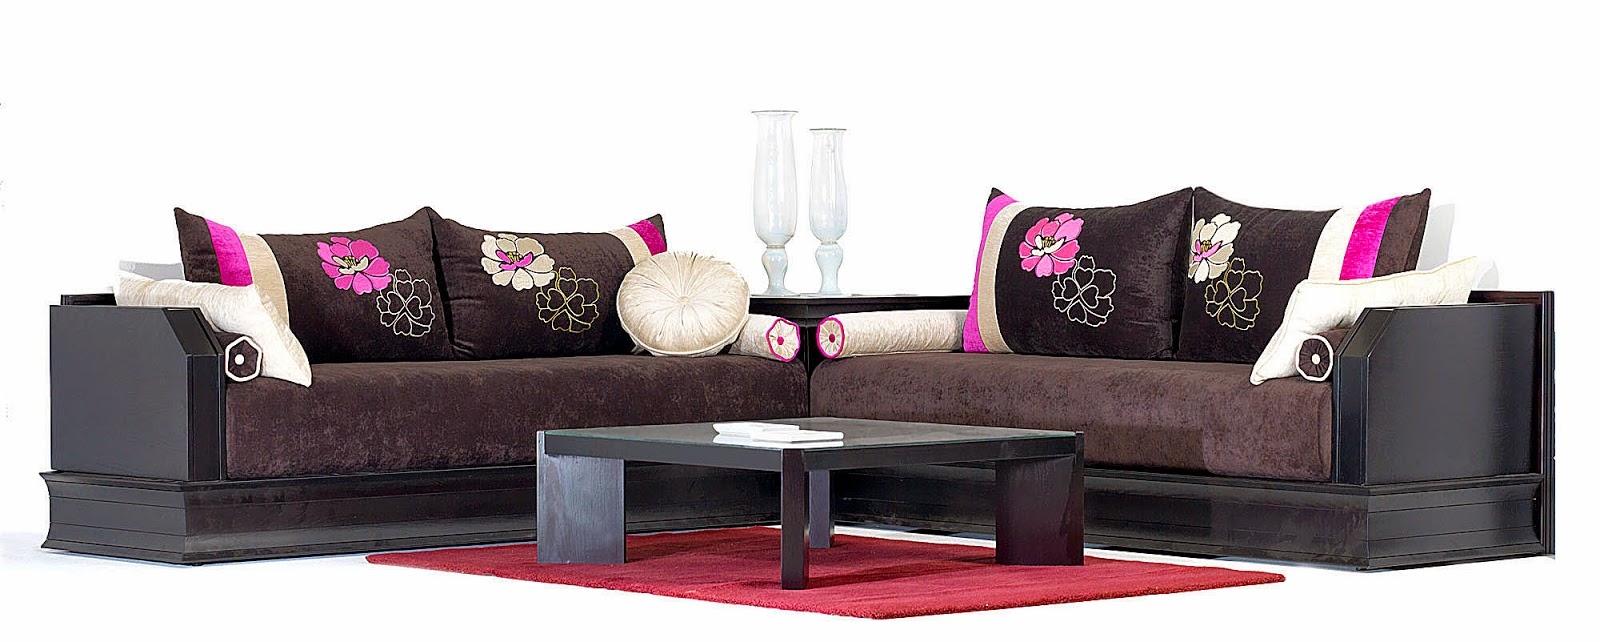 design sofas 2016 sofa design. Black Bedroom Furniture Sets. Home Design Ideas